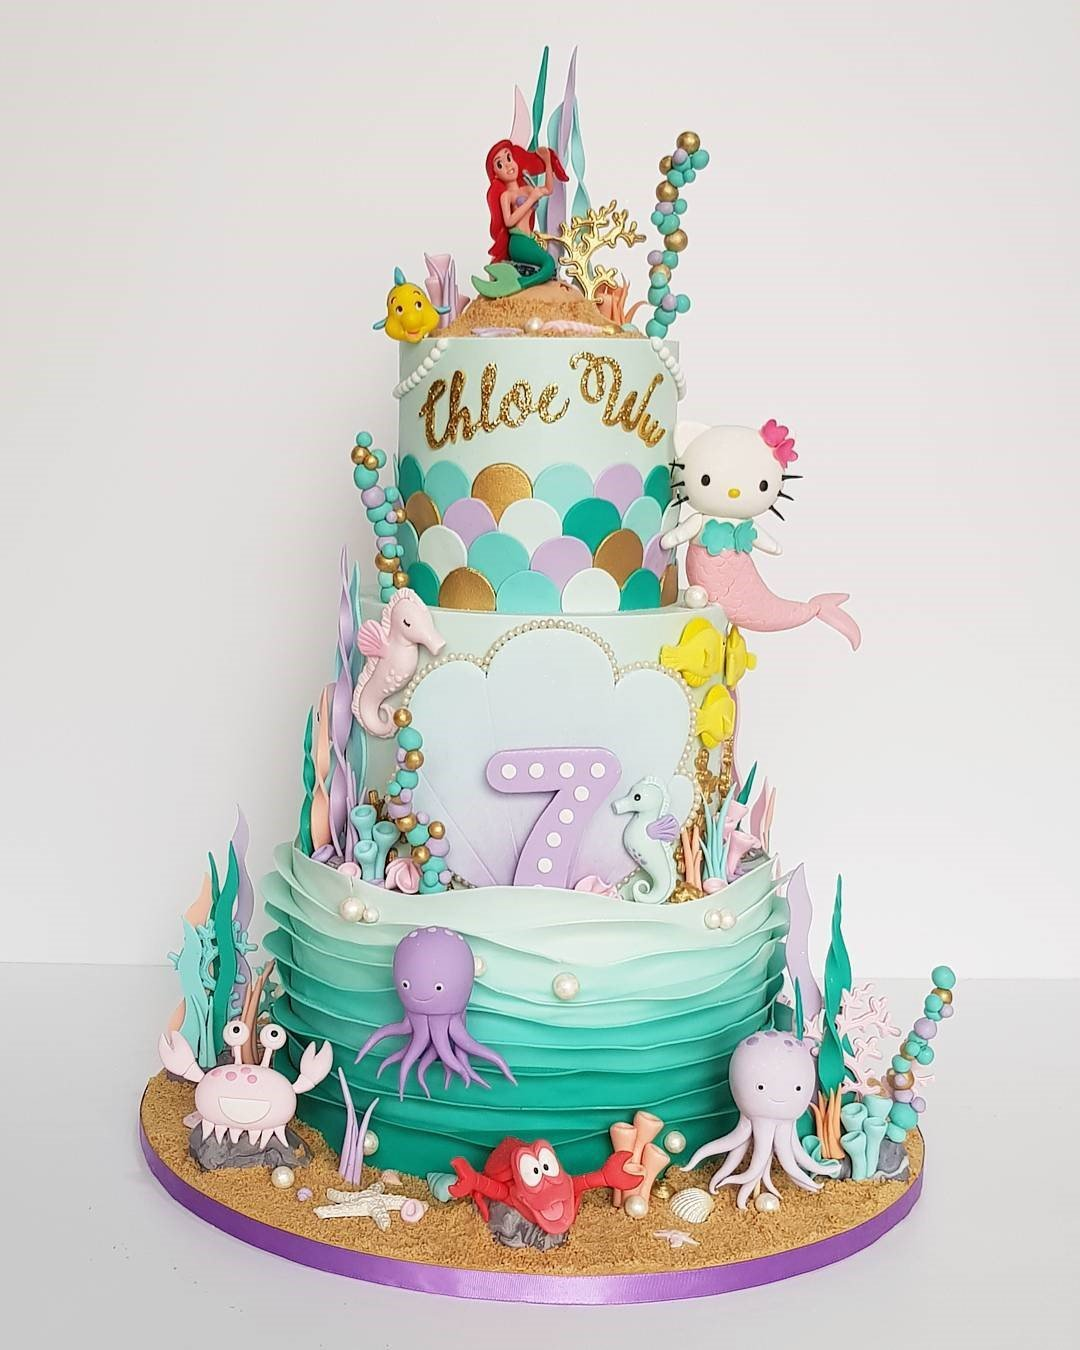 Mermaid Cake - Big - Cake for Kids' Birthday event dubai